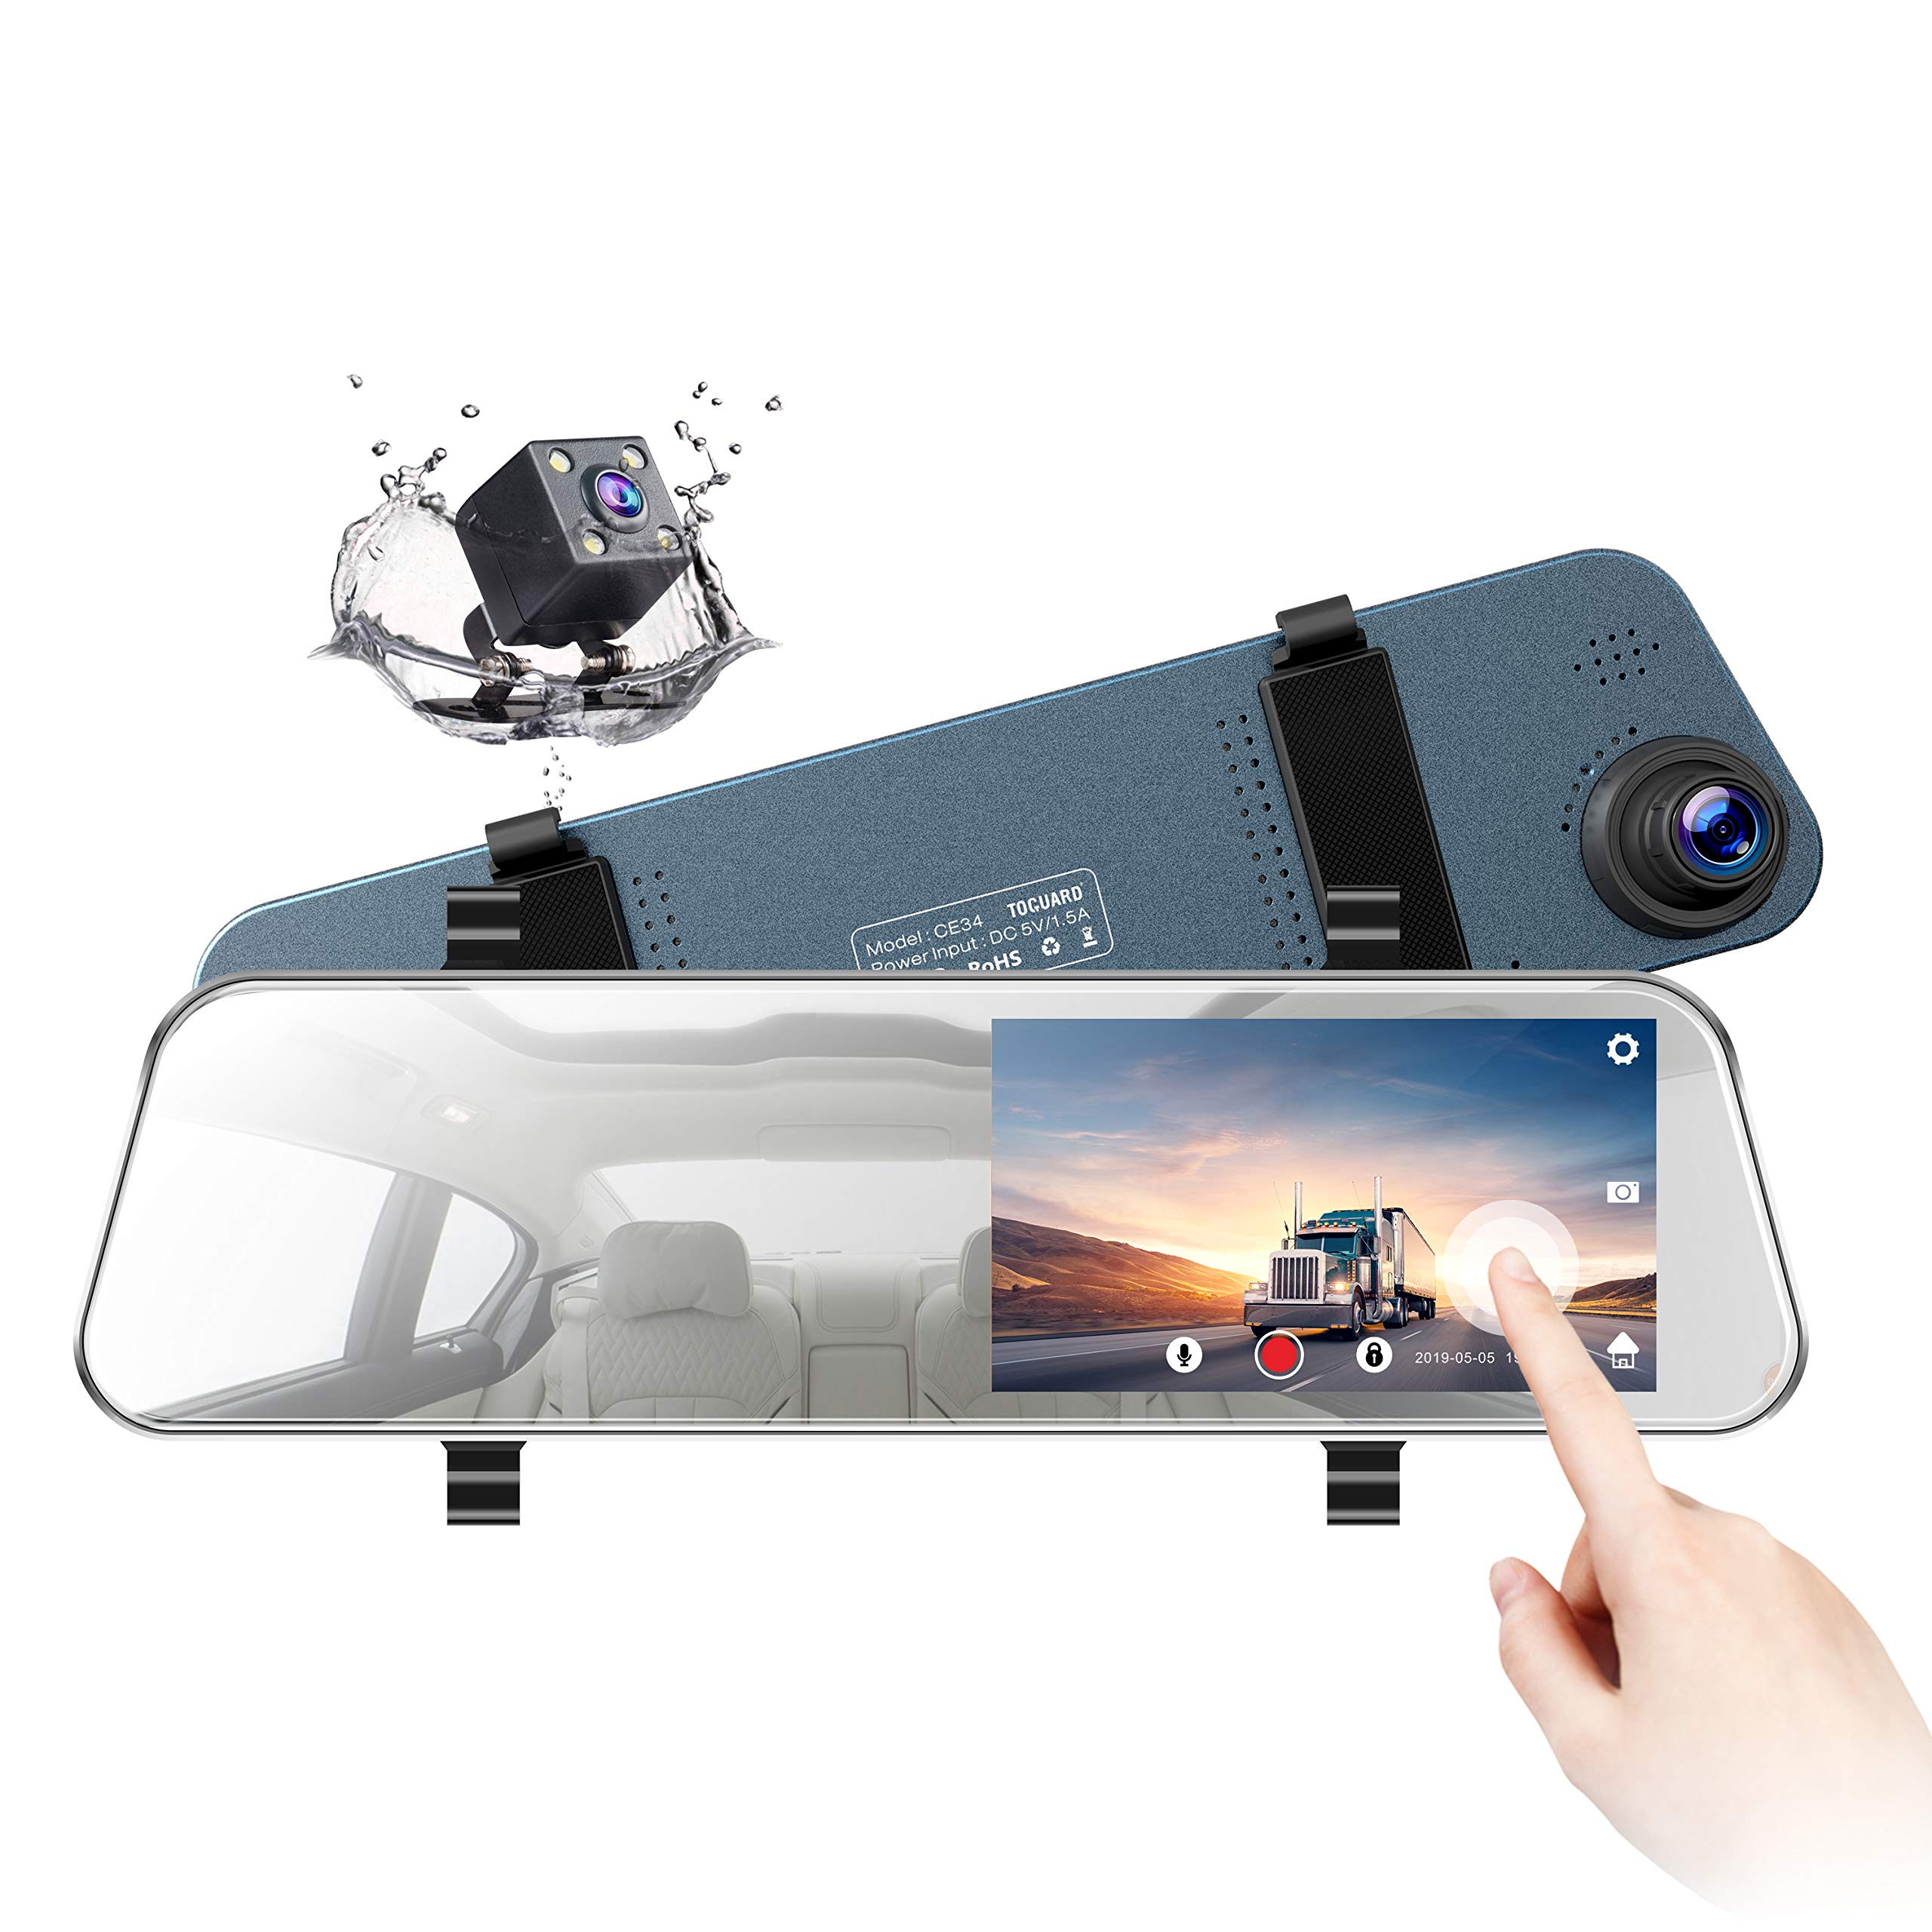 TOGUARD Backup Camera 5'' LCD Mirror Dash Cam Rear View Mirror Camera Ultra-Thin Touch Screen Full HD 1080P Dash Cam Front and Rear Dual Lens with Waterproof Rear Camera by TOGUARD